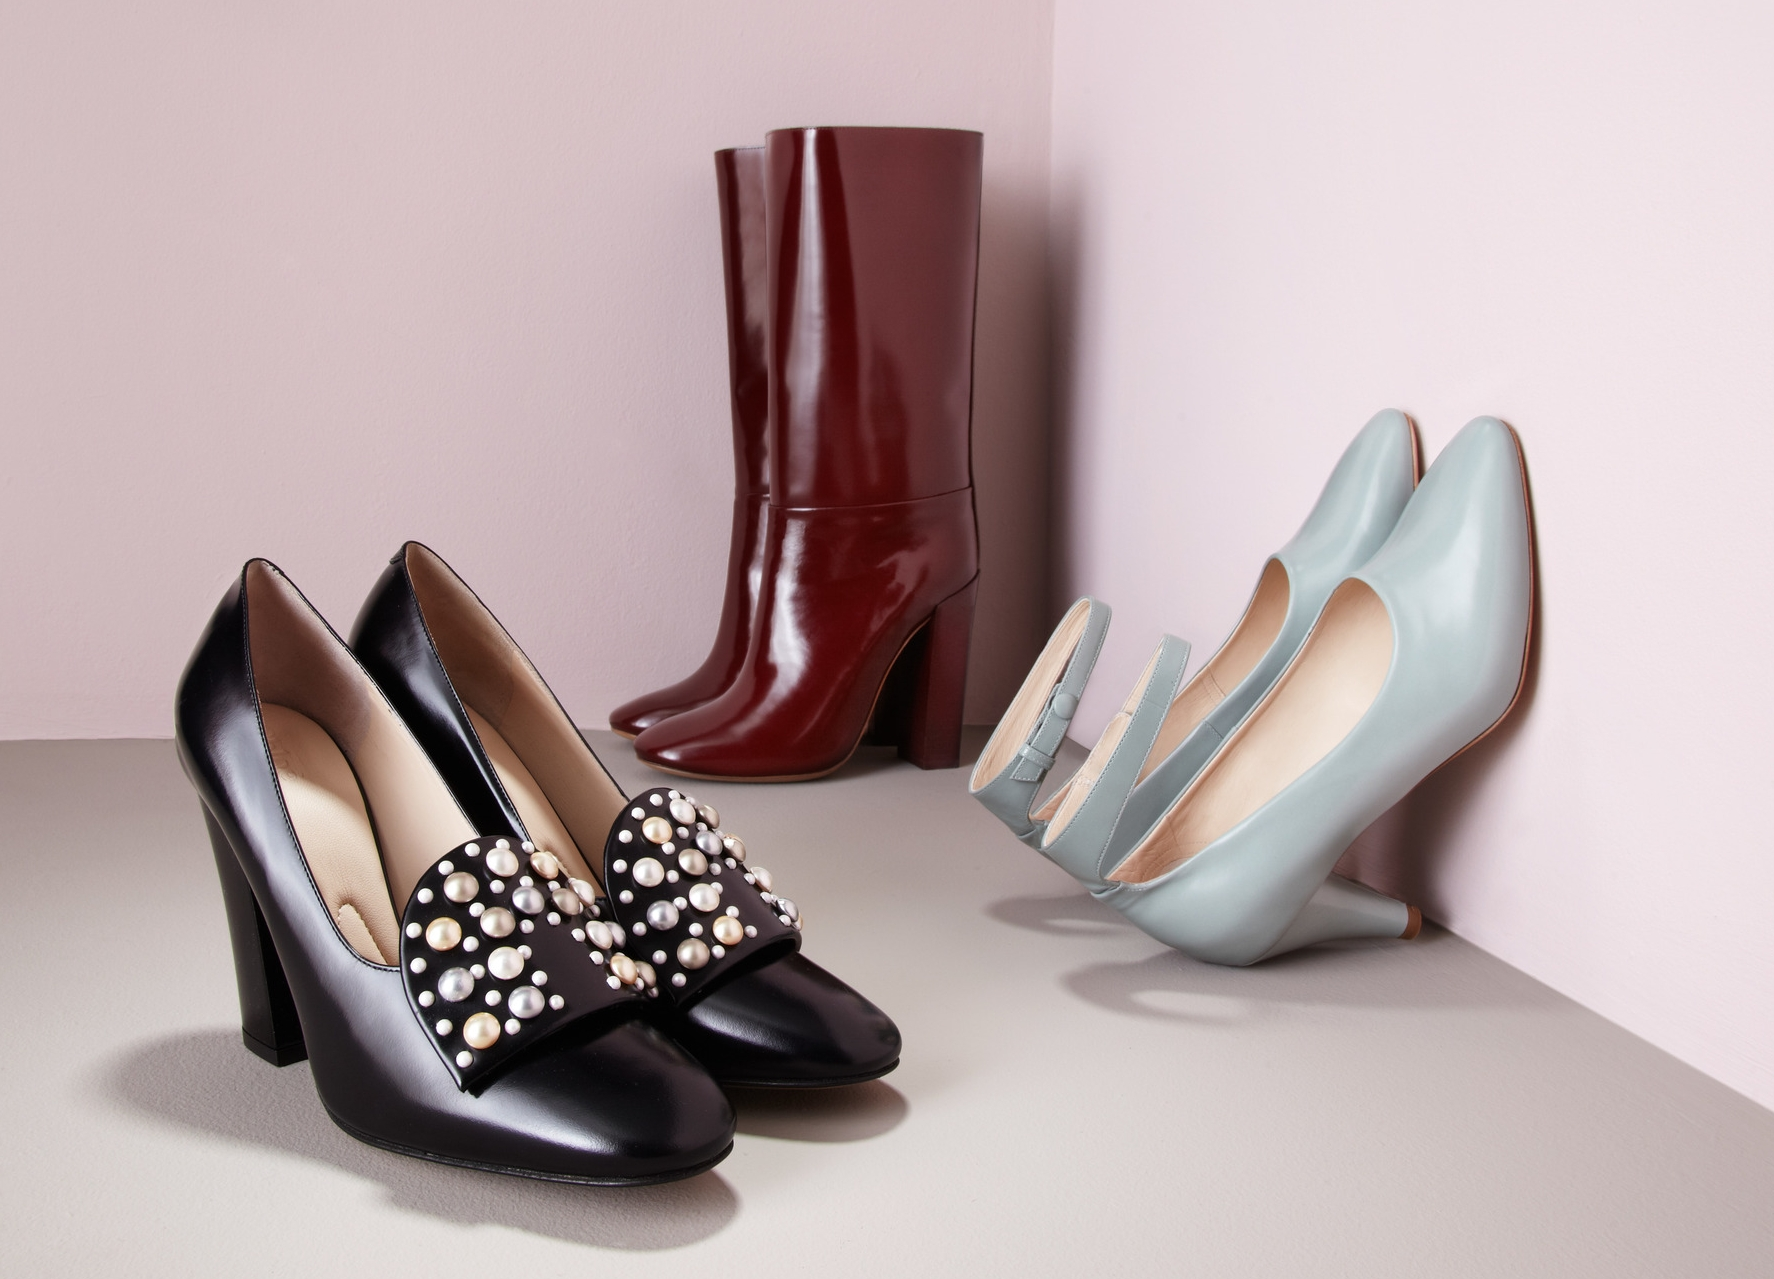 Shoes_by_Chloe_See_by_Chloe_1022636297_EDITORIAL_FINAL2_RR.JPEG